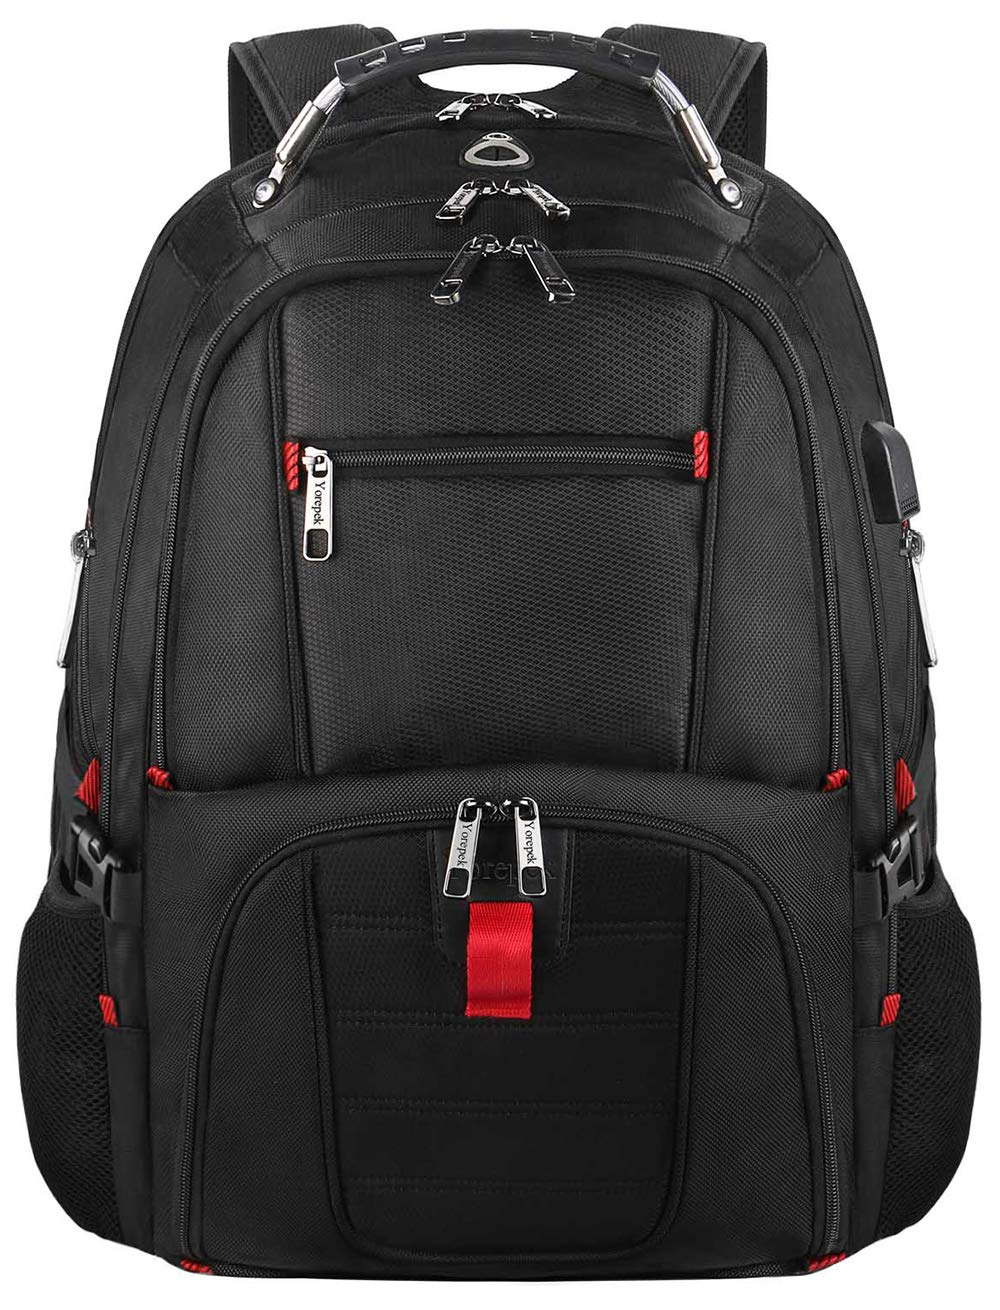 Extra Large College School Backpack for Men and Women with USB Charging Port,TSA Friendly Water Resistant Computer Backpacks Fit 17 Inch Laptops,Black YOREPEK Travel Laptop Backpack